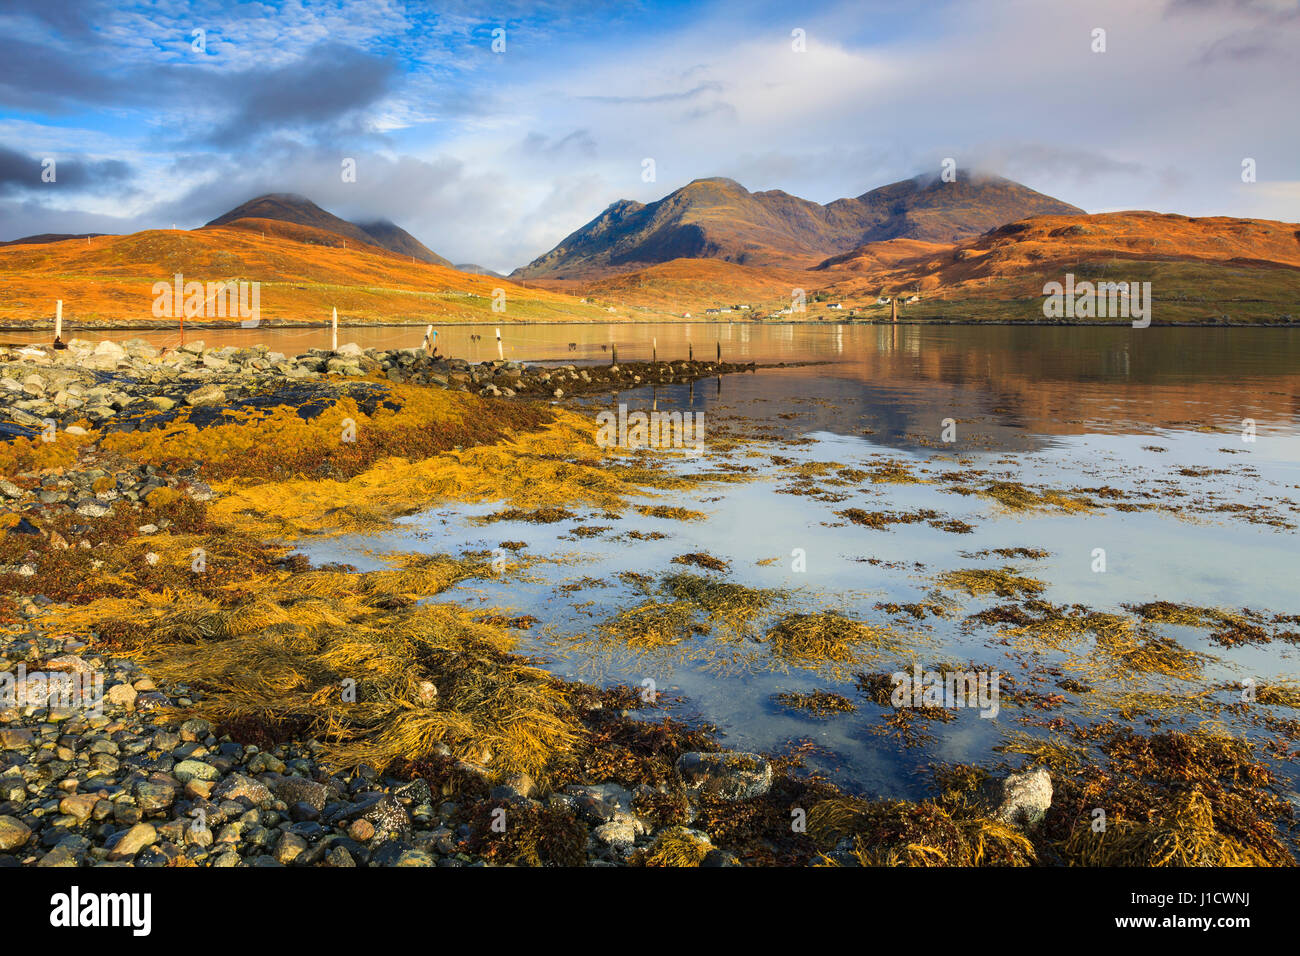 An Cliseam from Loch Bun Anhainn Eadarra on the Isle of Harris - Stock Image